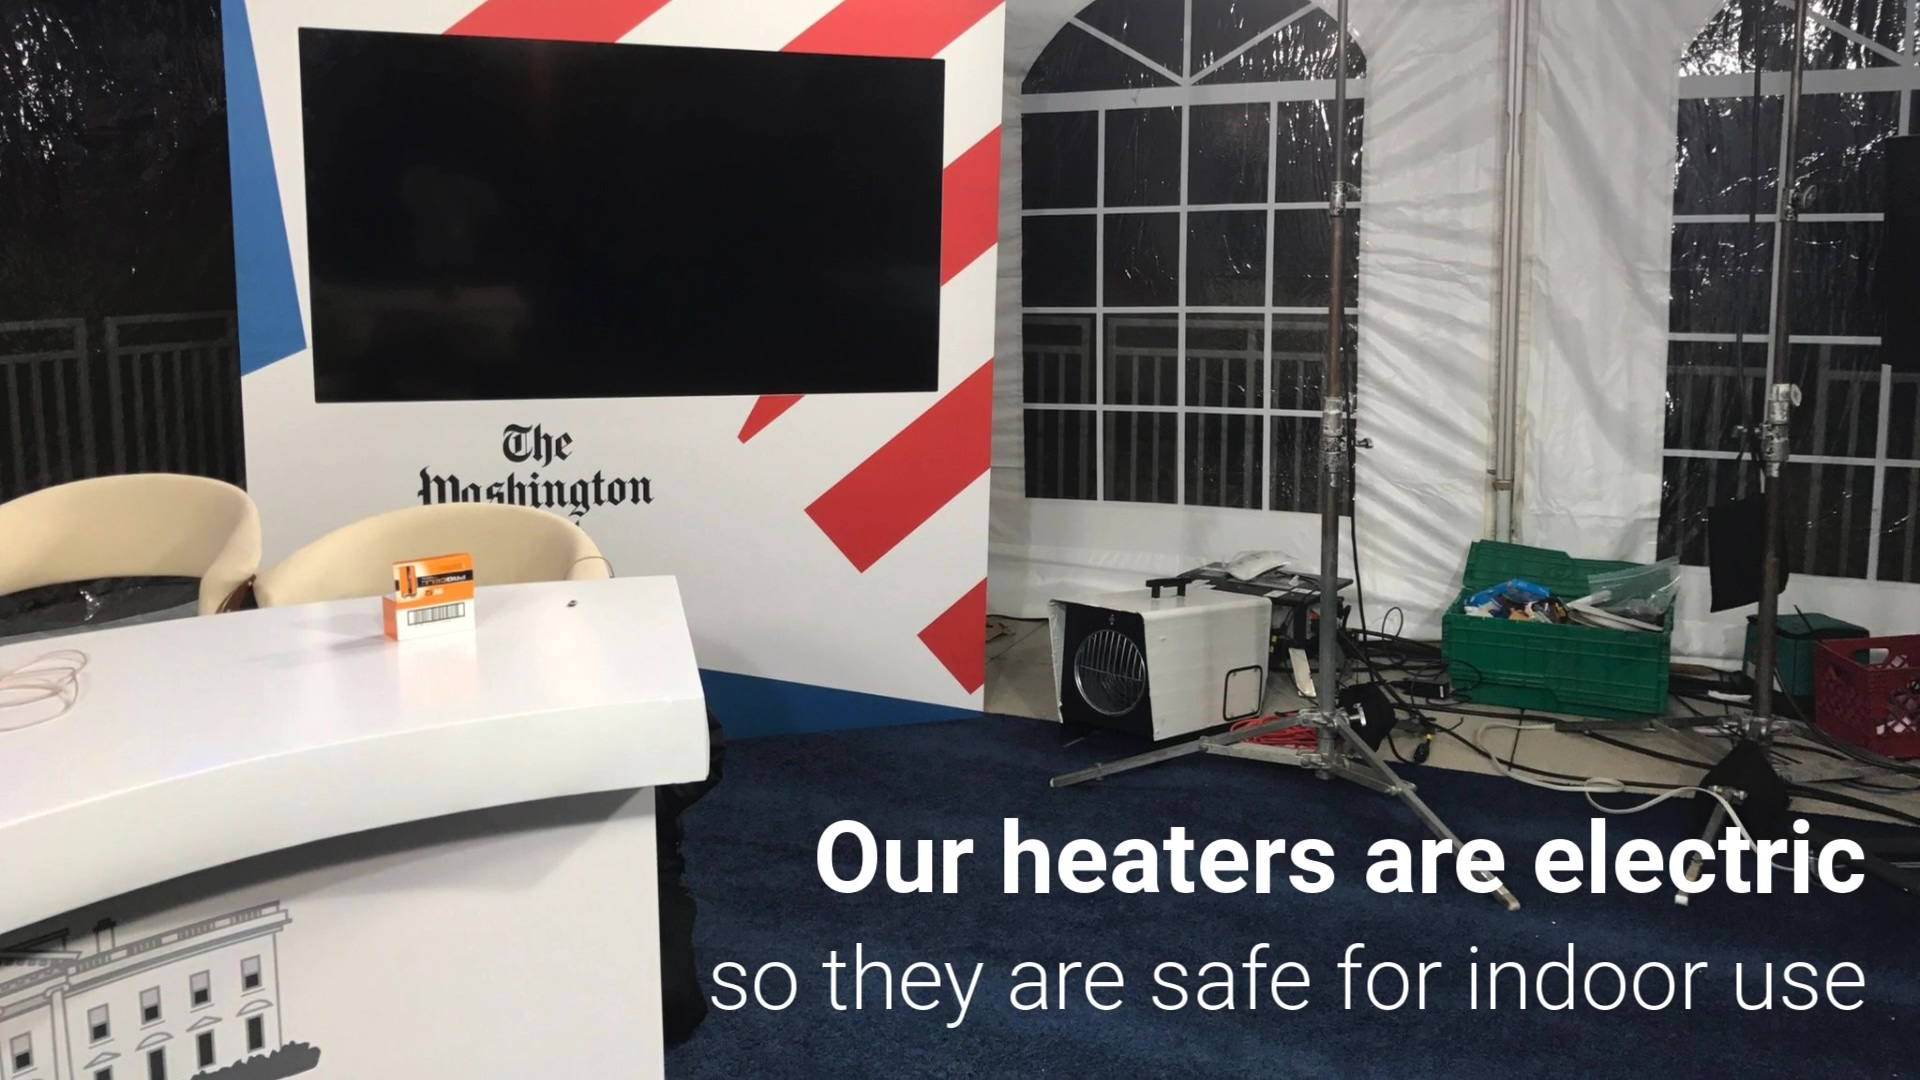 A_Closer_Look_AirPacs_Electric_Heaters_1080p